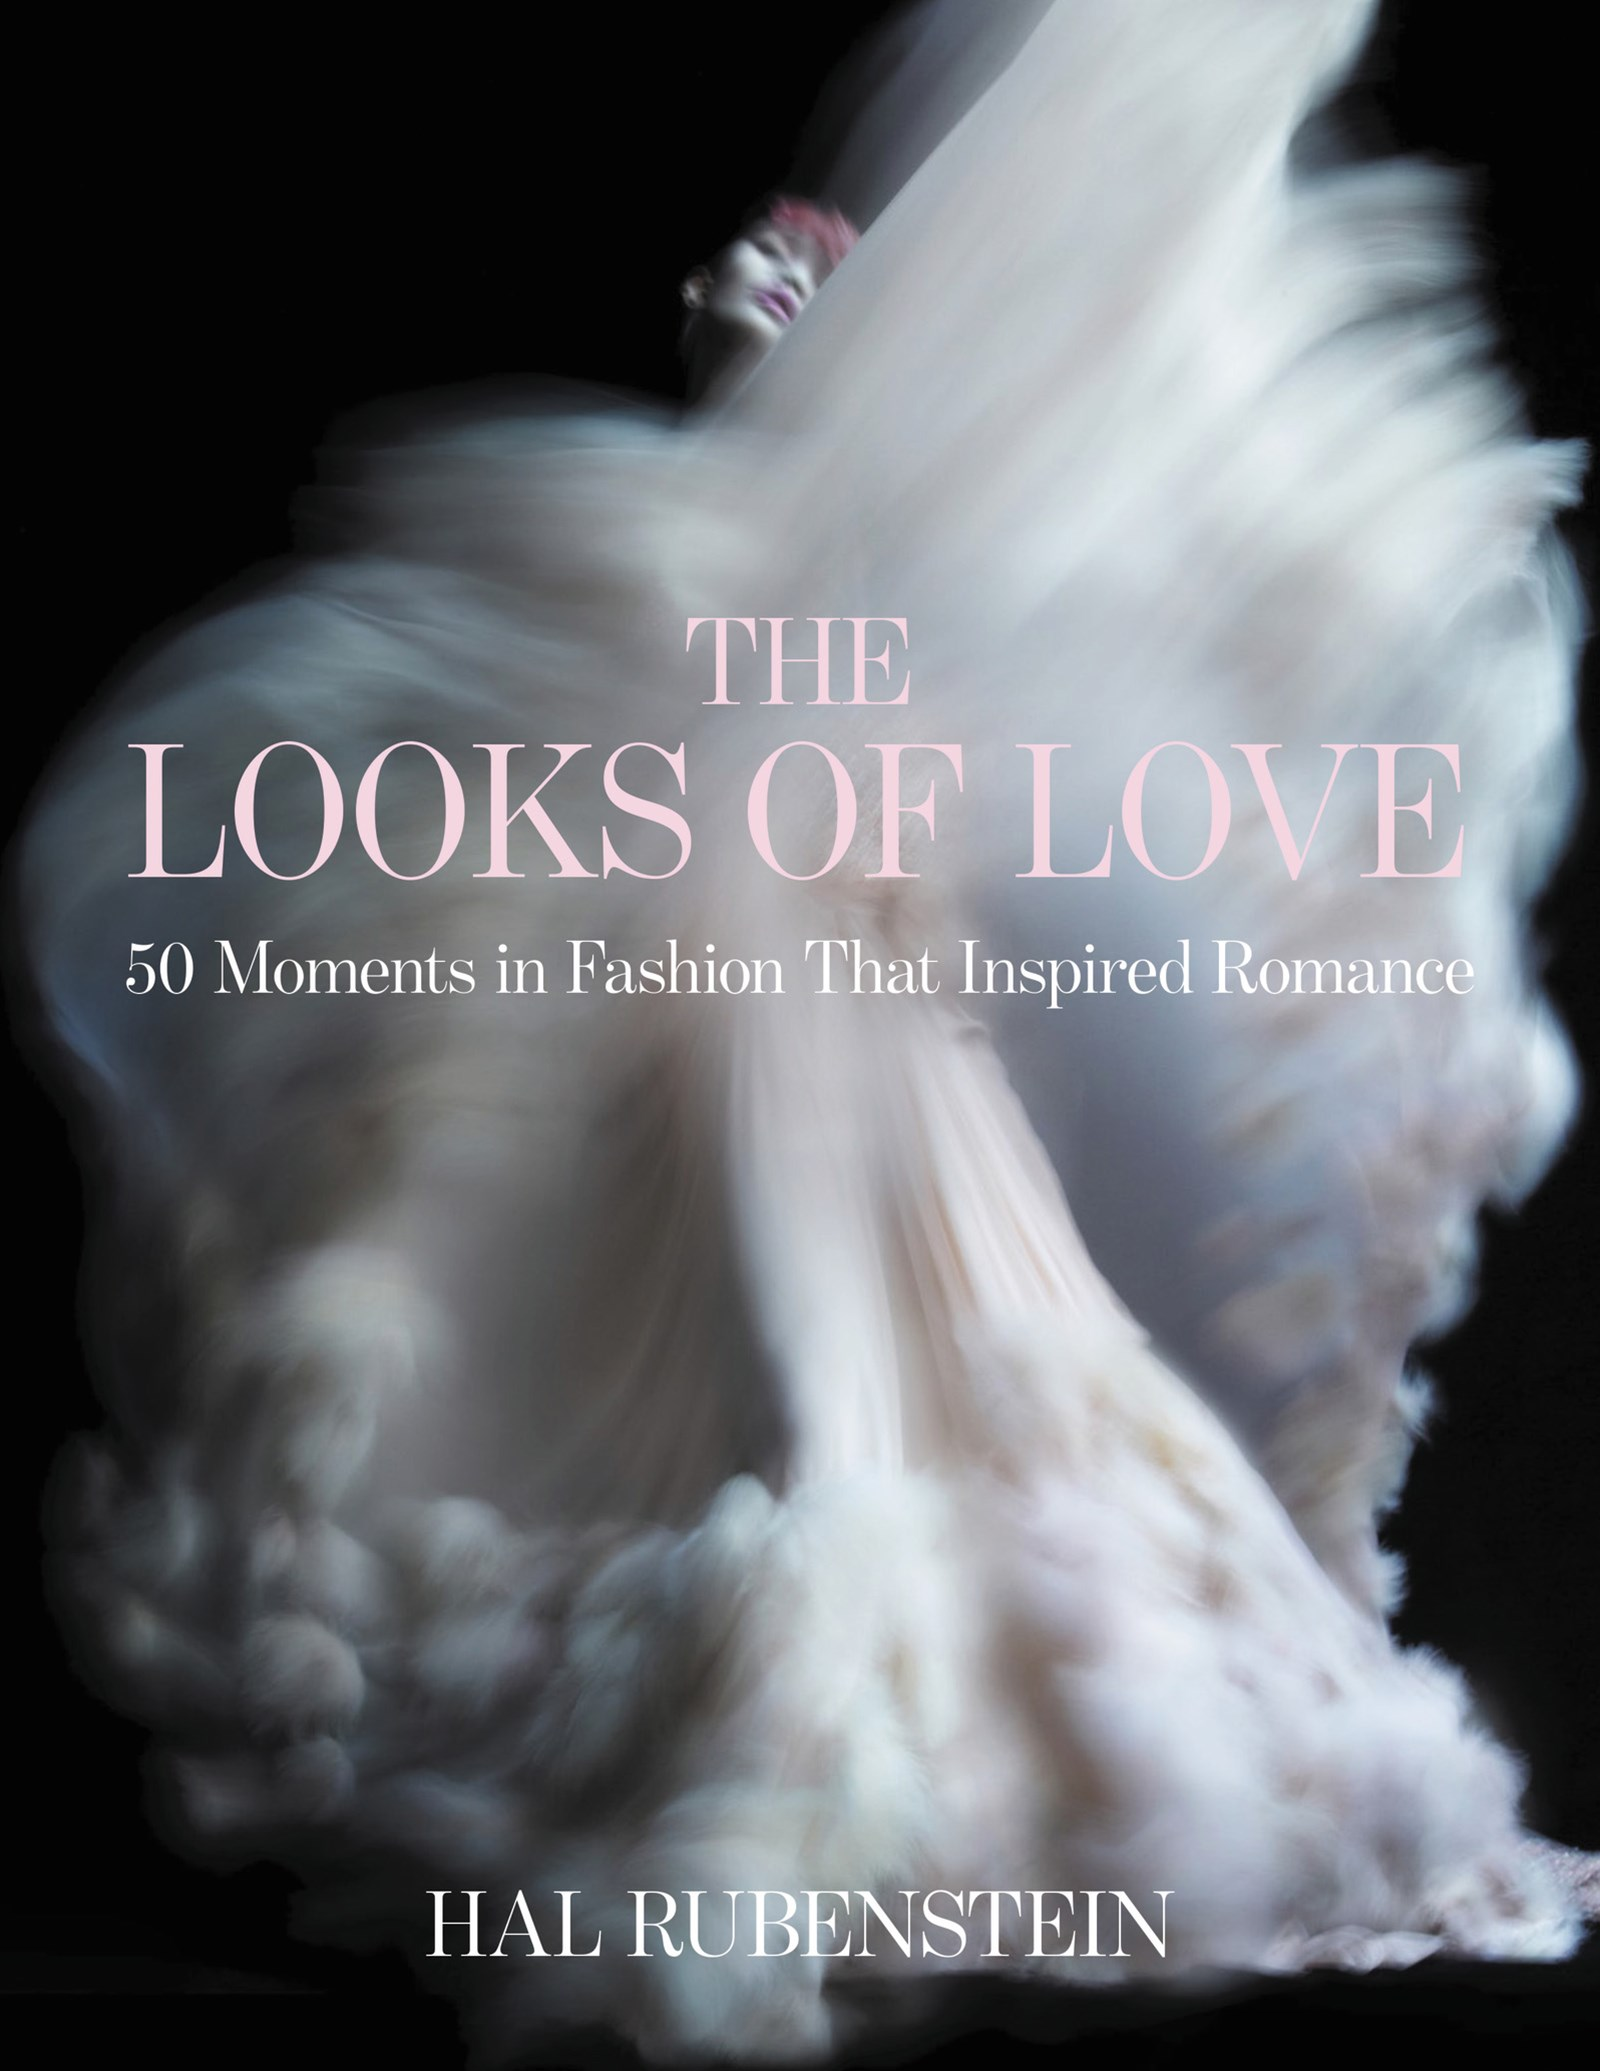 The Looks Of Love: 50 Moments In Fashion That Inspired Romance